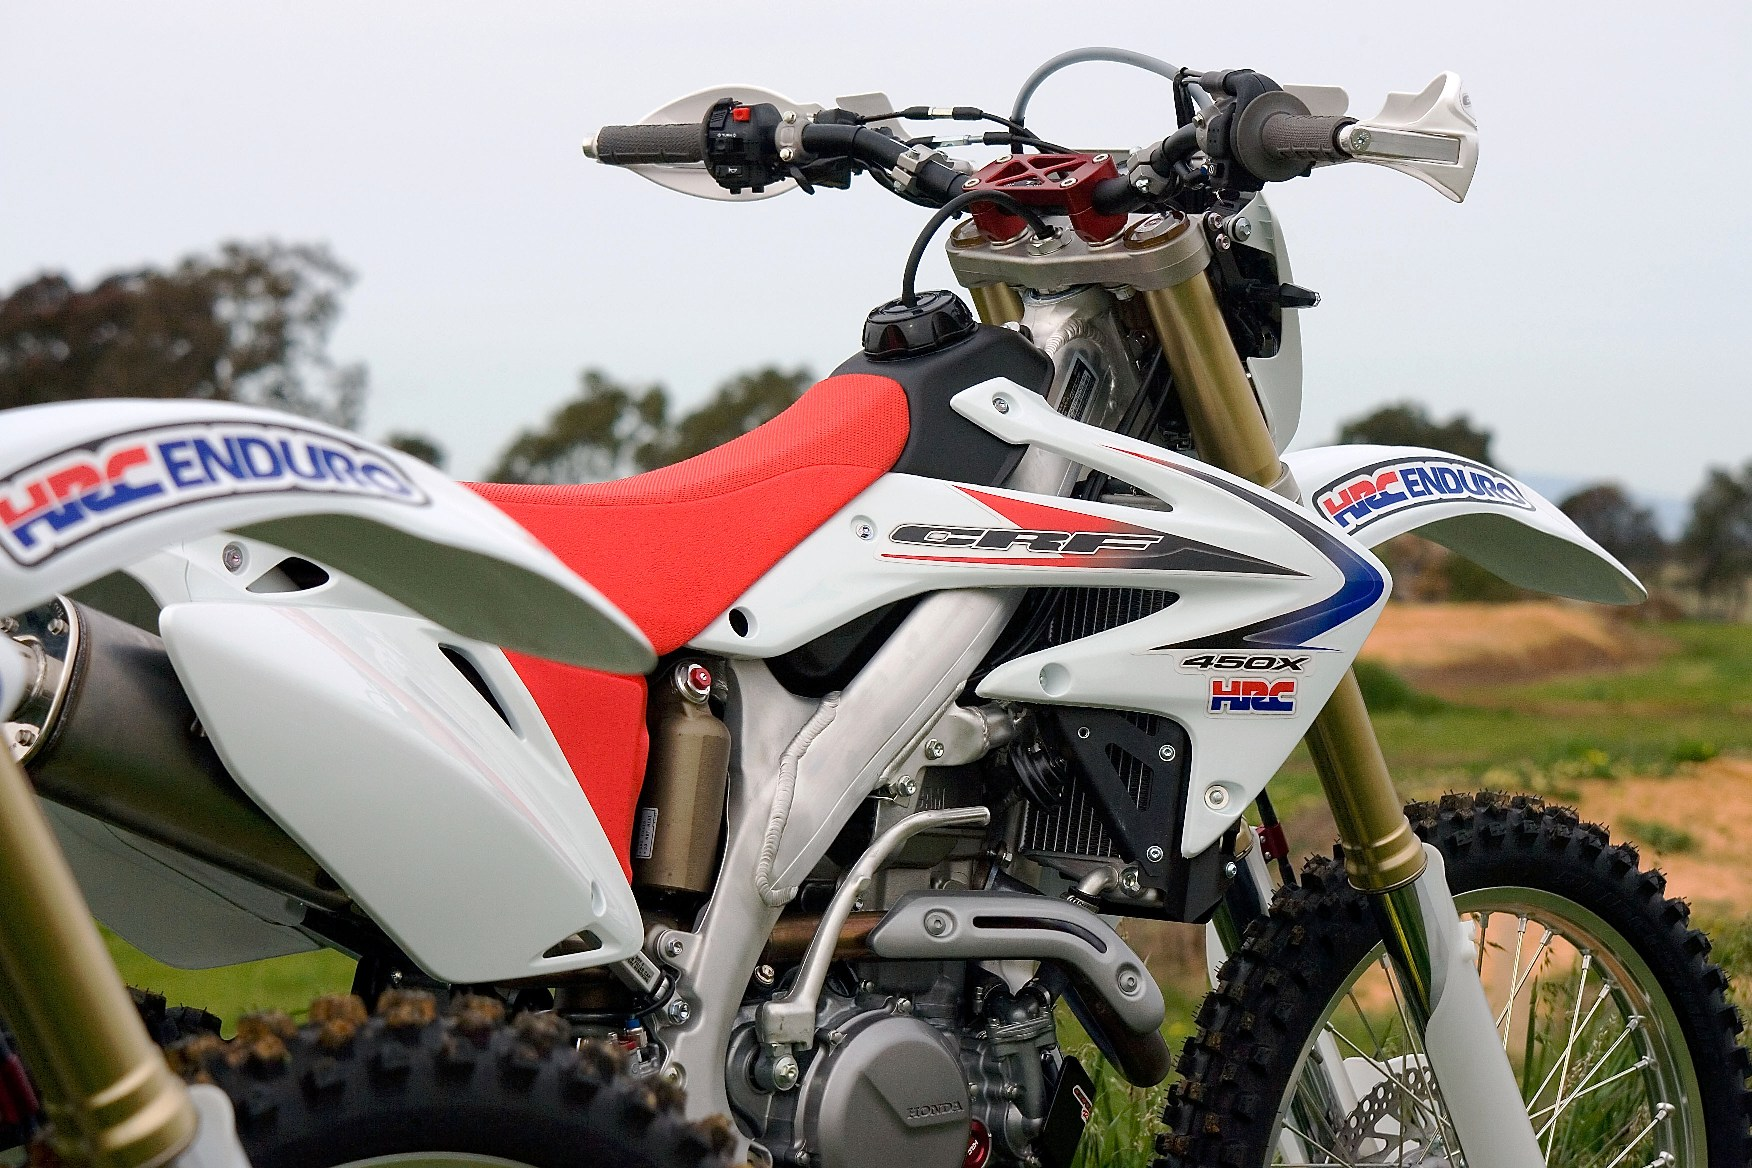 The bosses Limited Editon HRC CRF450X